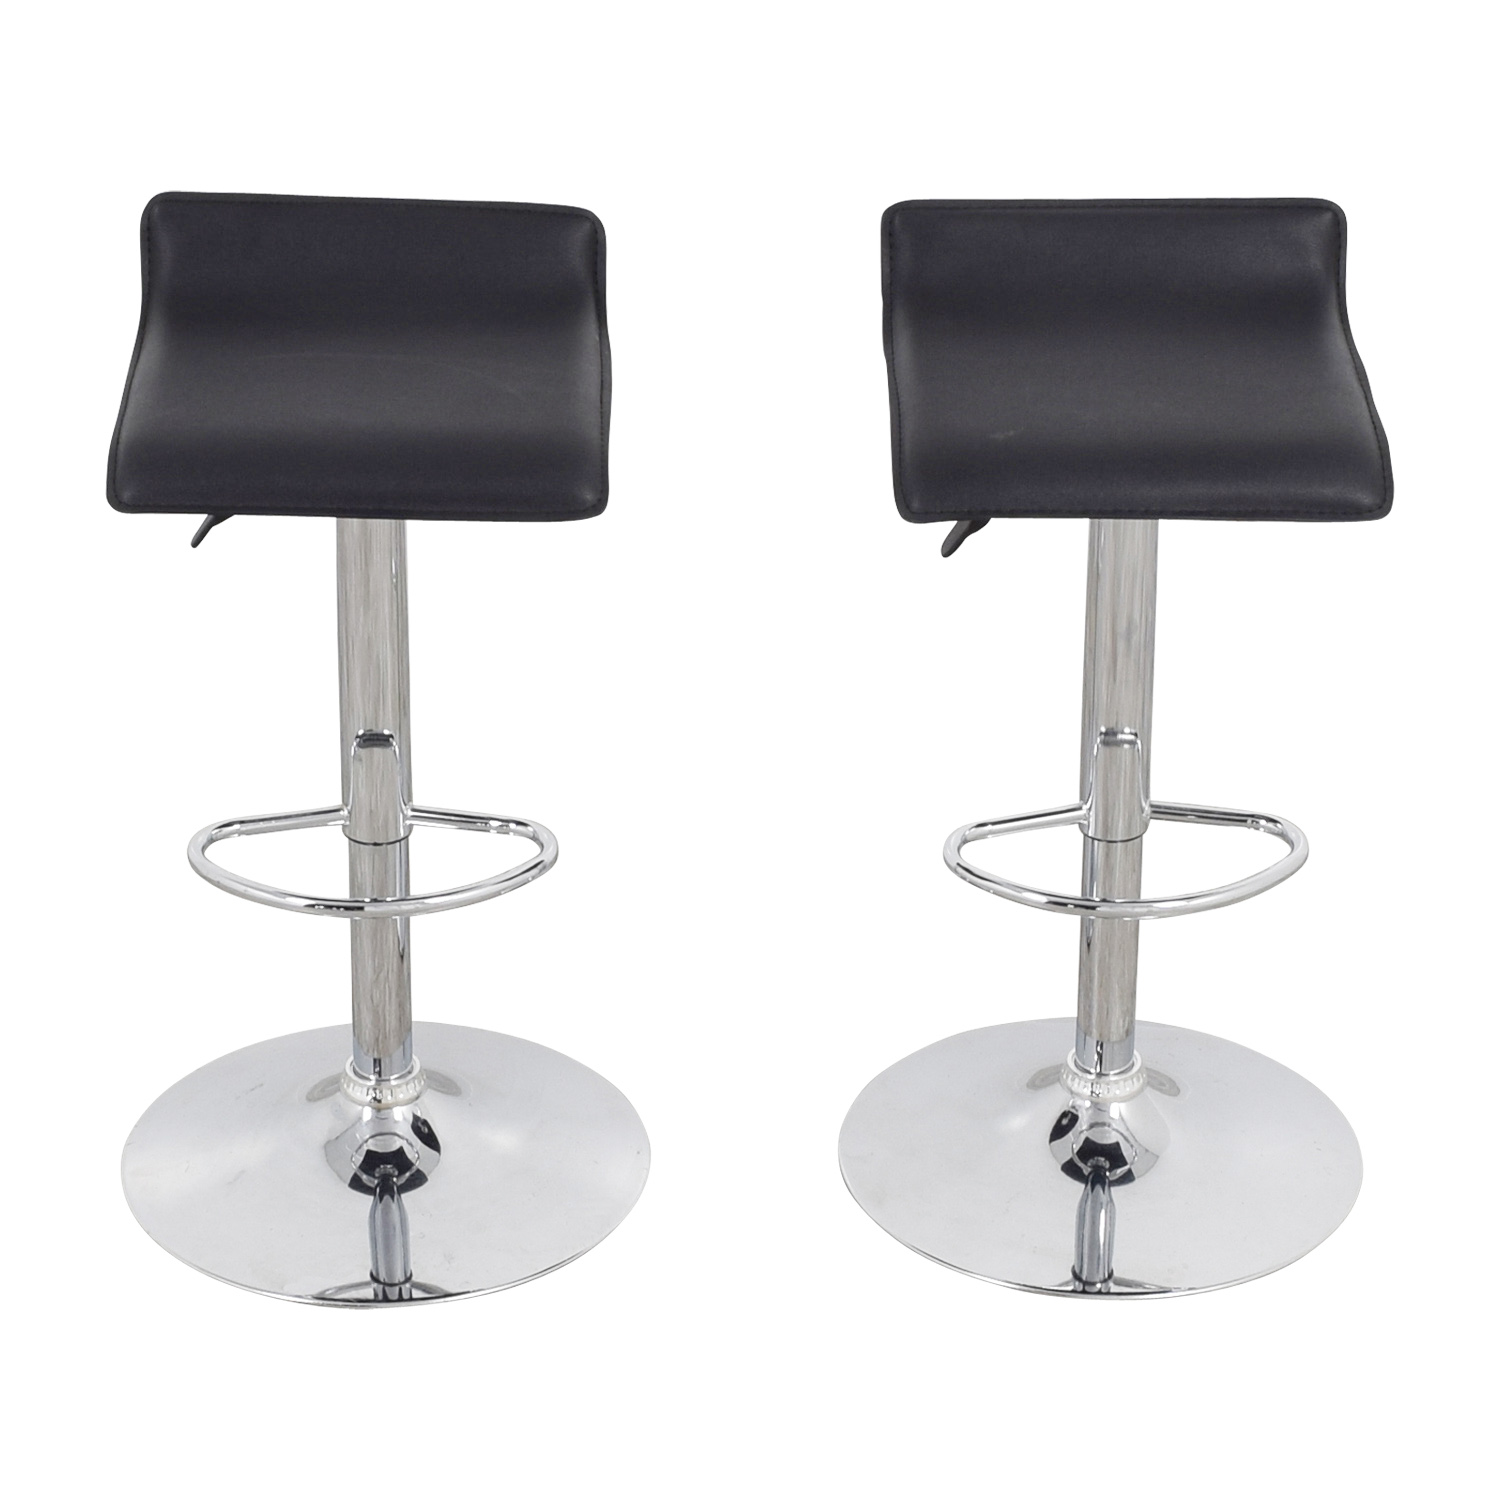 stool chair second hand gas fire pit sets with chairs 87 off black bar stools